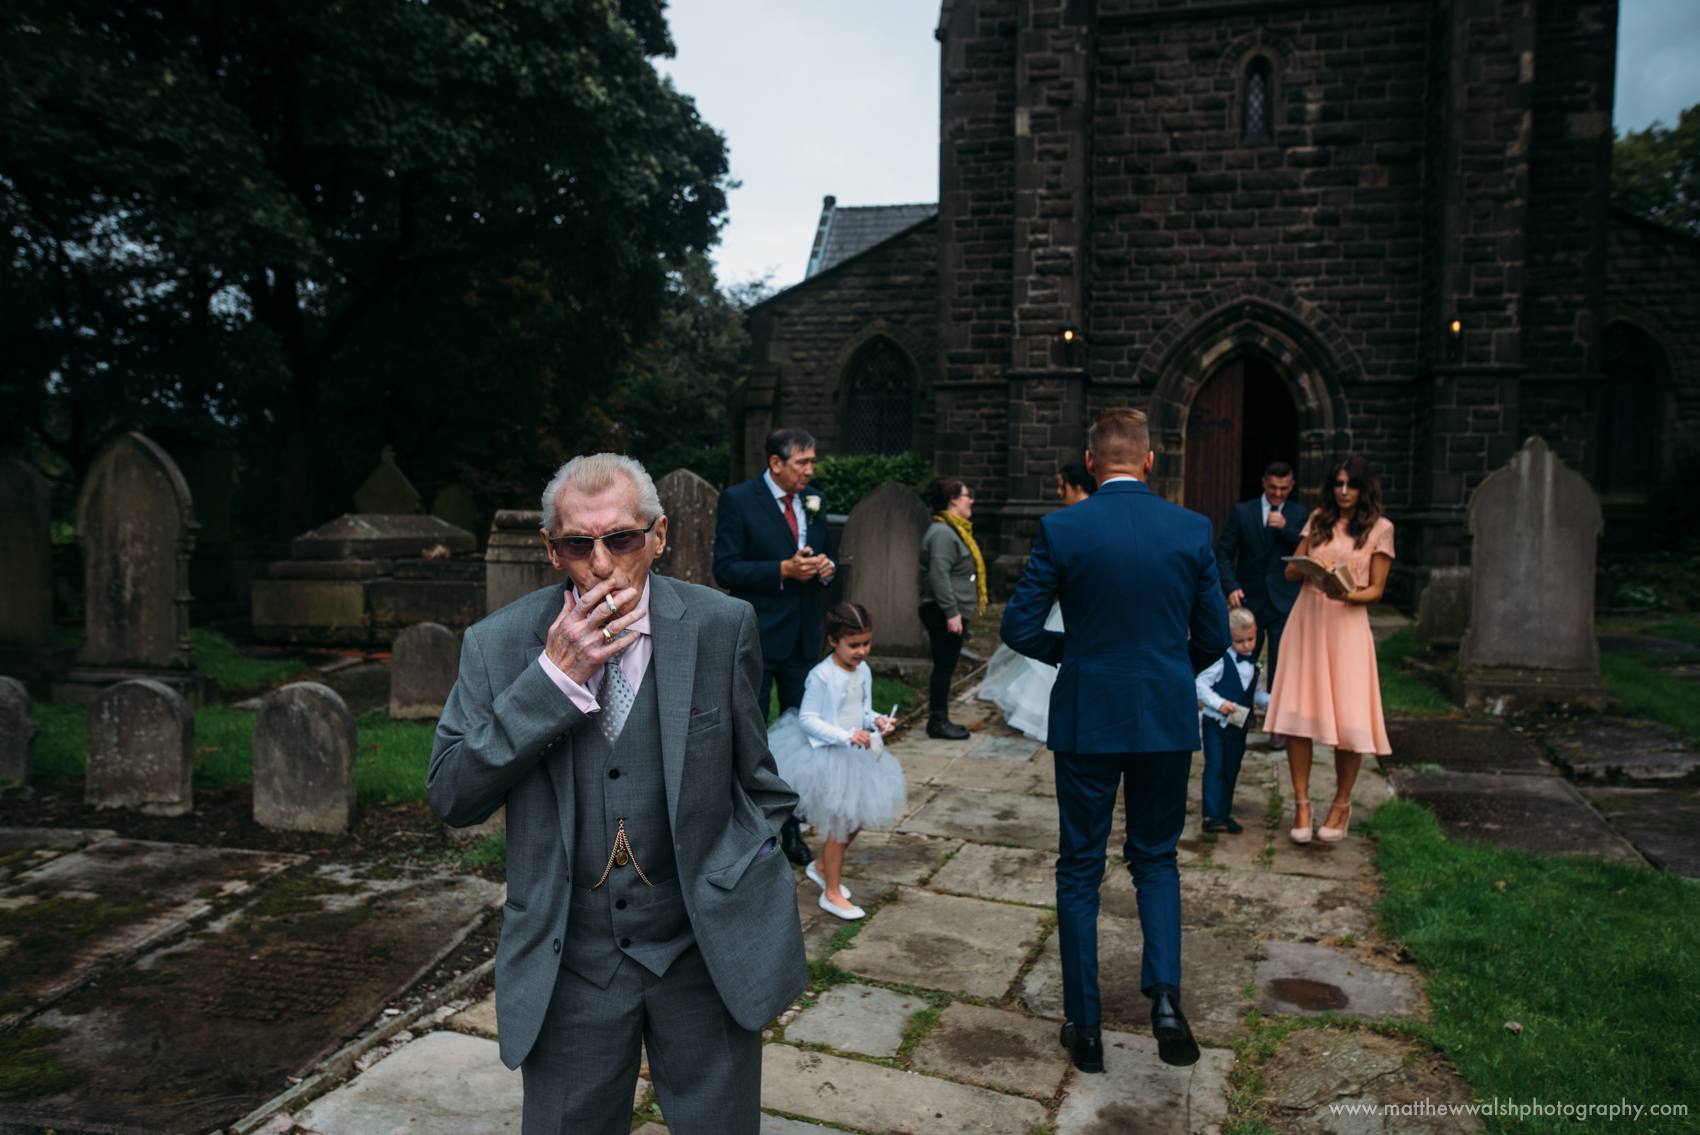 Good to get out of the church to spark up a fag